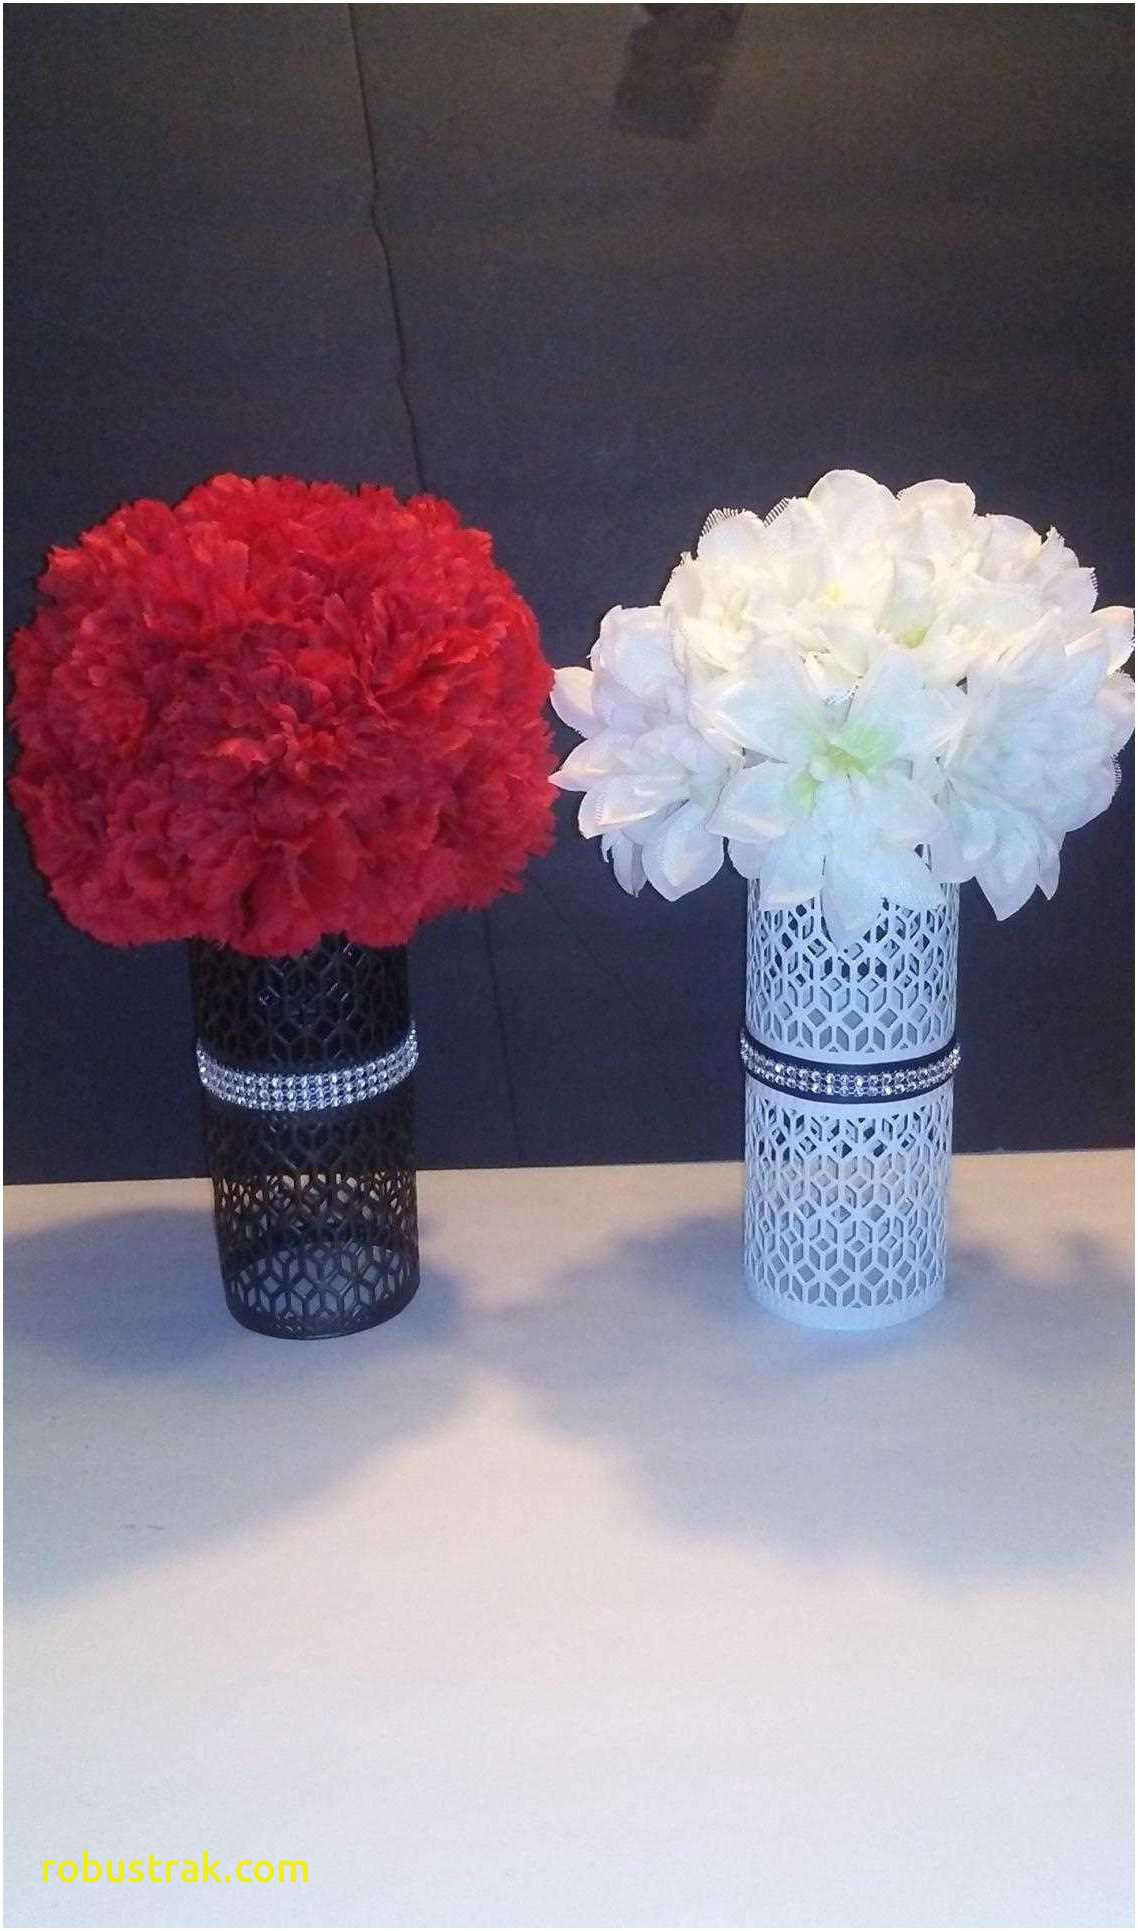 cheap plastic vases of inspirational how to decorate roses in a vase home design ideas pertaining to wedding decor flowers astounding dollar tree wedding decorations awesome h vases dollar vase i 0d 1138